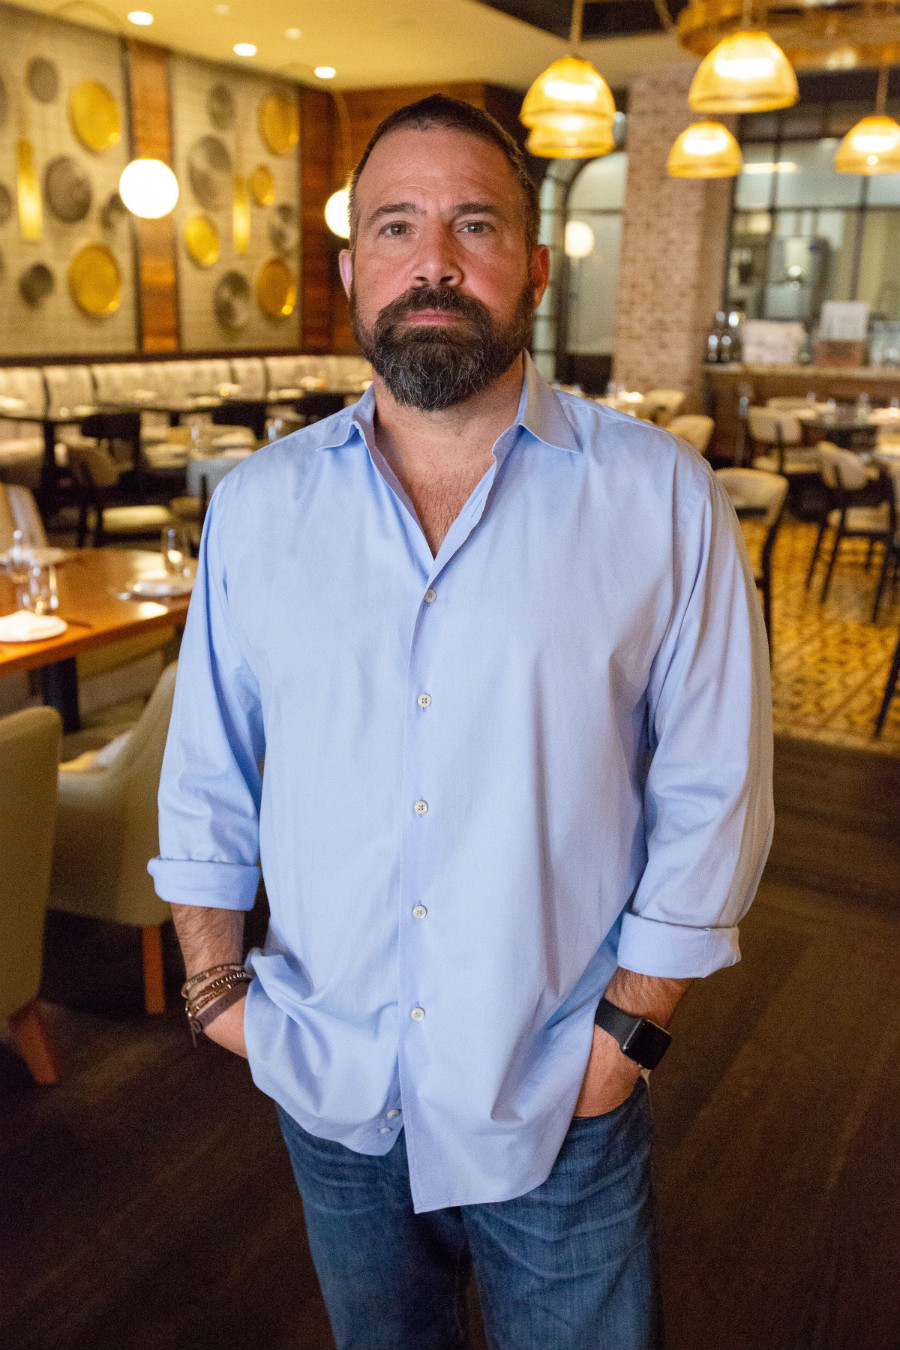 Andy Masi, Founder and CEO of Clique Hospitality